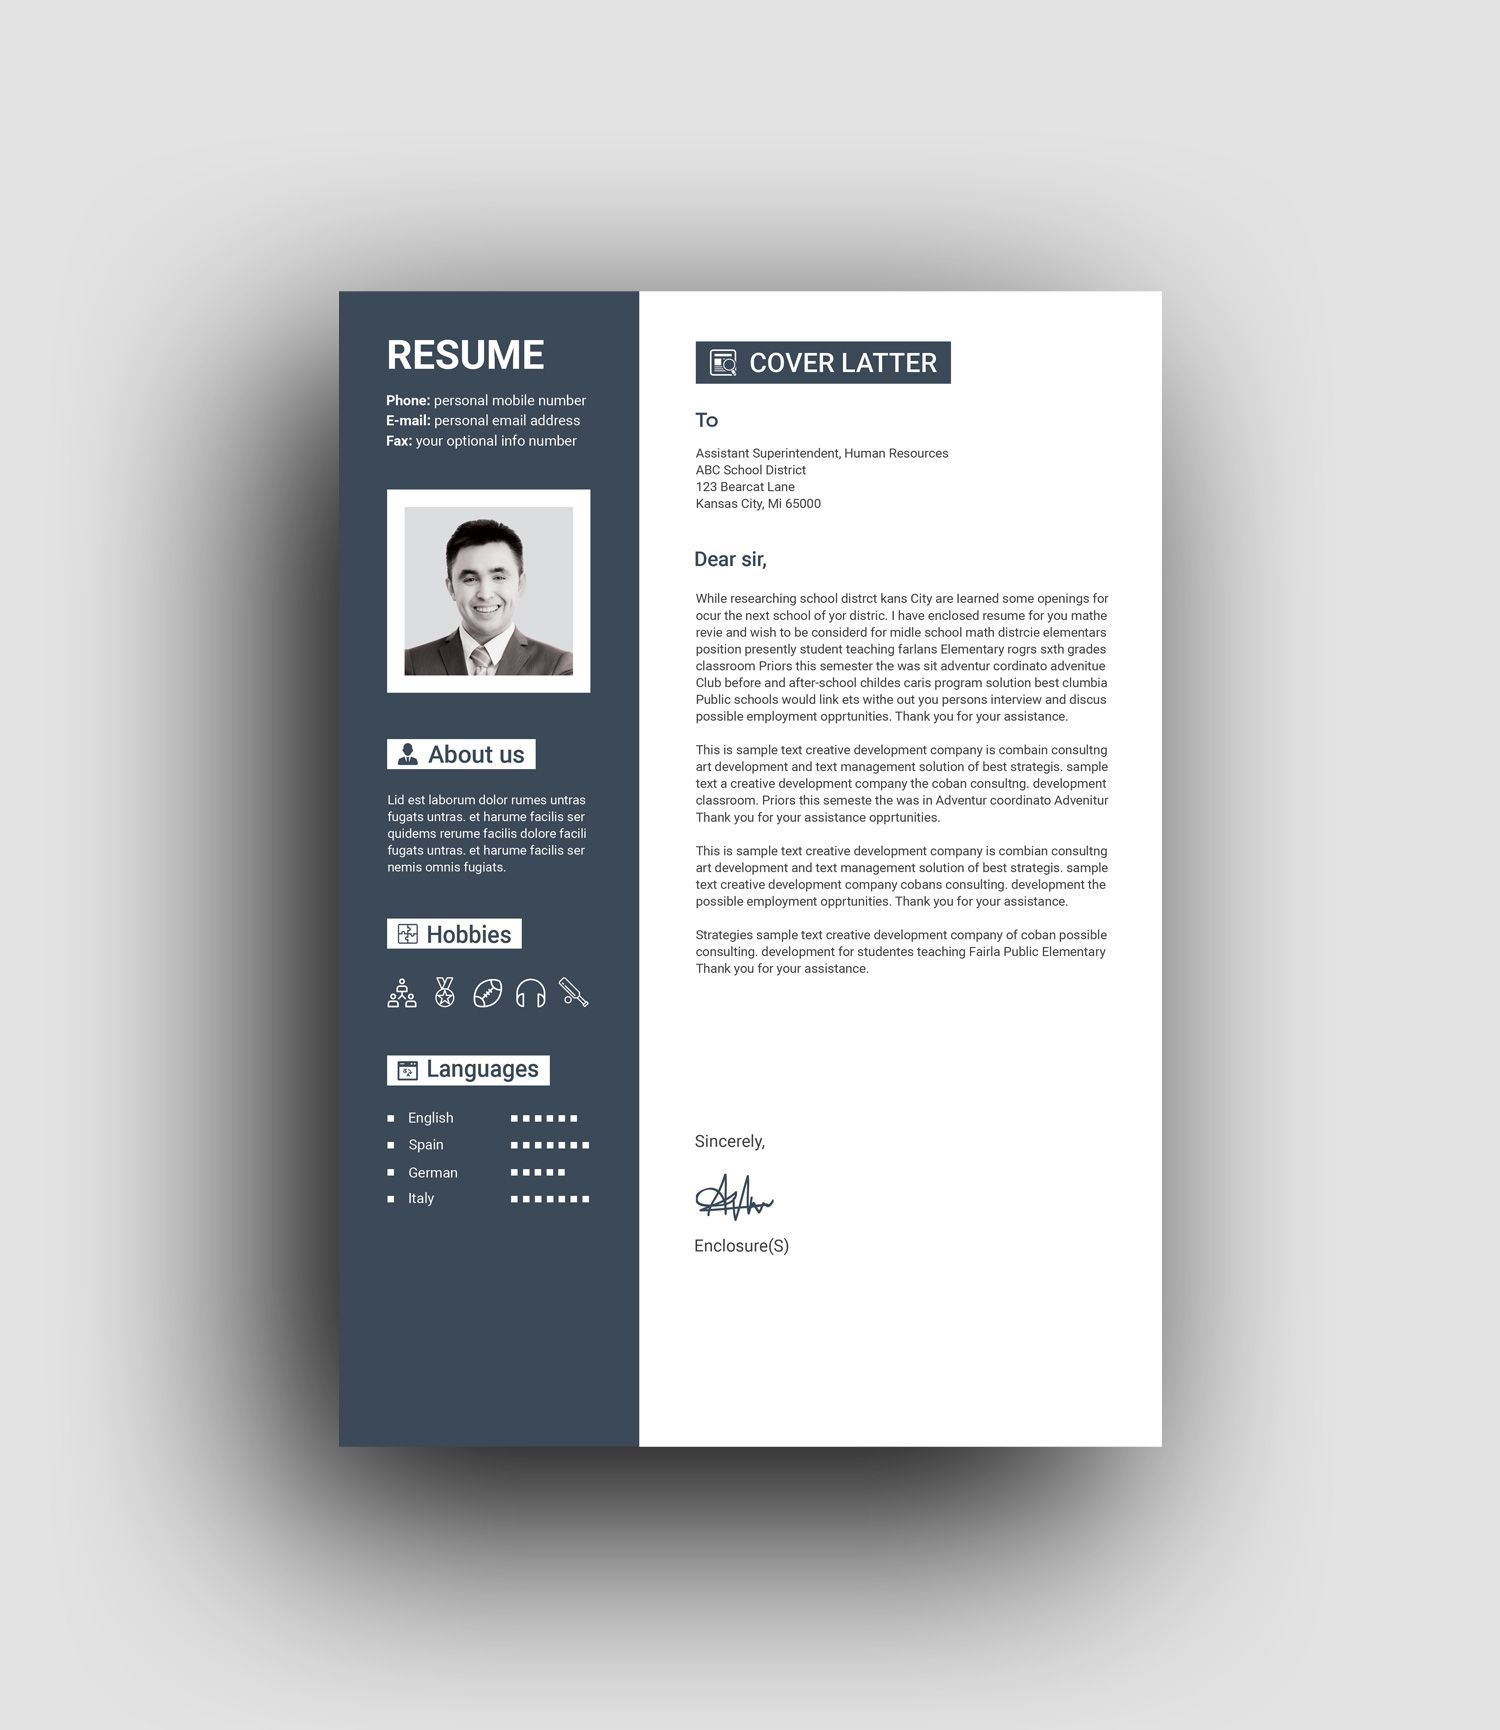 Resume template professional Resume template Resume